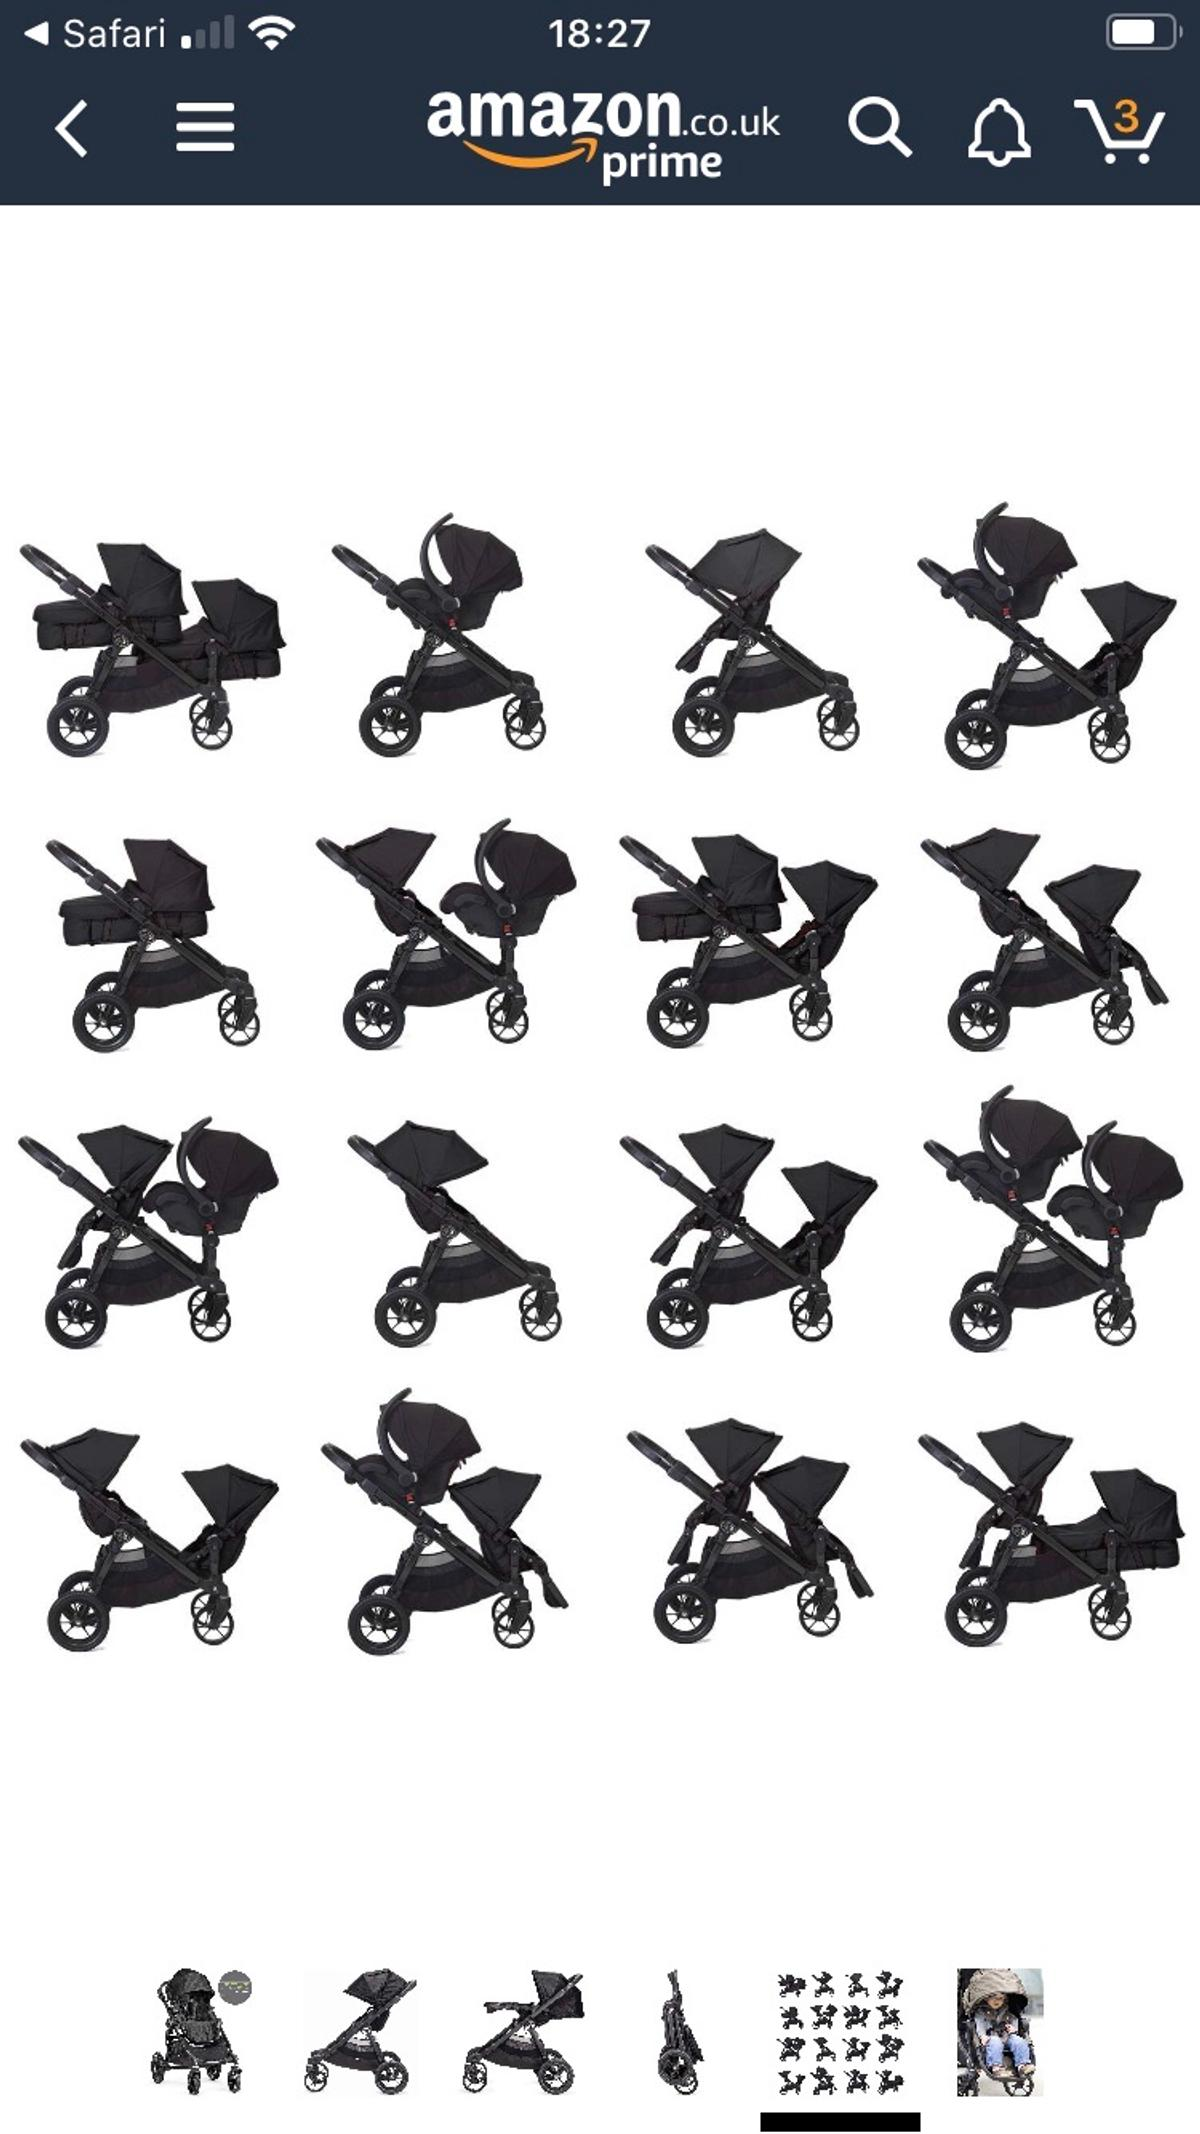 City select tandem double buggy in black 2 standard seat units and 1 conversion kit to make one a carrycot for newborn (this is in red) Comes with maxi cosi car seat adapters, rain covers and 1 red footmuff for the standard seat unit Loads of different combinations for how you set up seats (see pictures) so really versatile. It also has a very large basket underneath In used but very good condition. Usual marks on the frame from getting in and out of the car but nothing major Fantastic buggy!